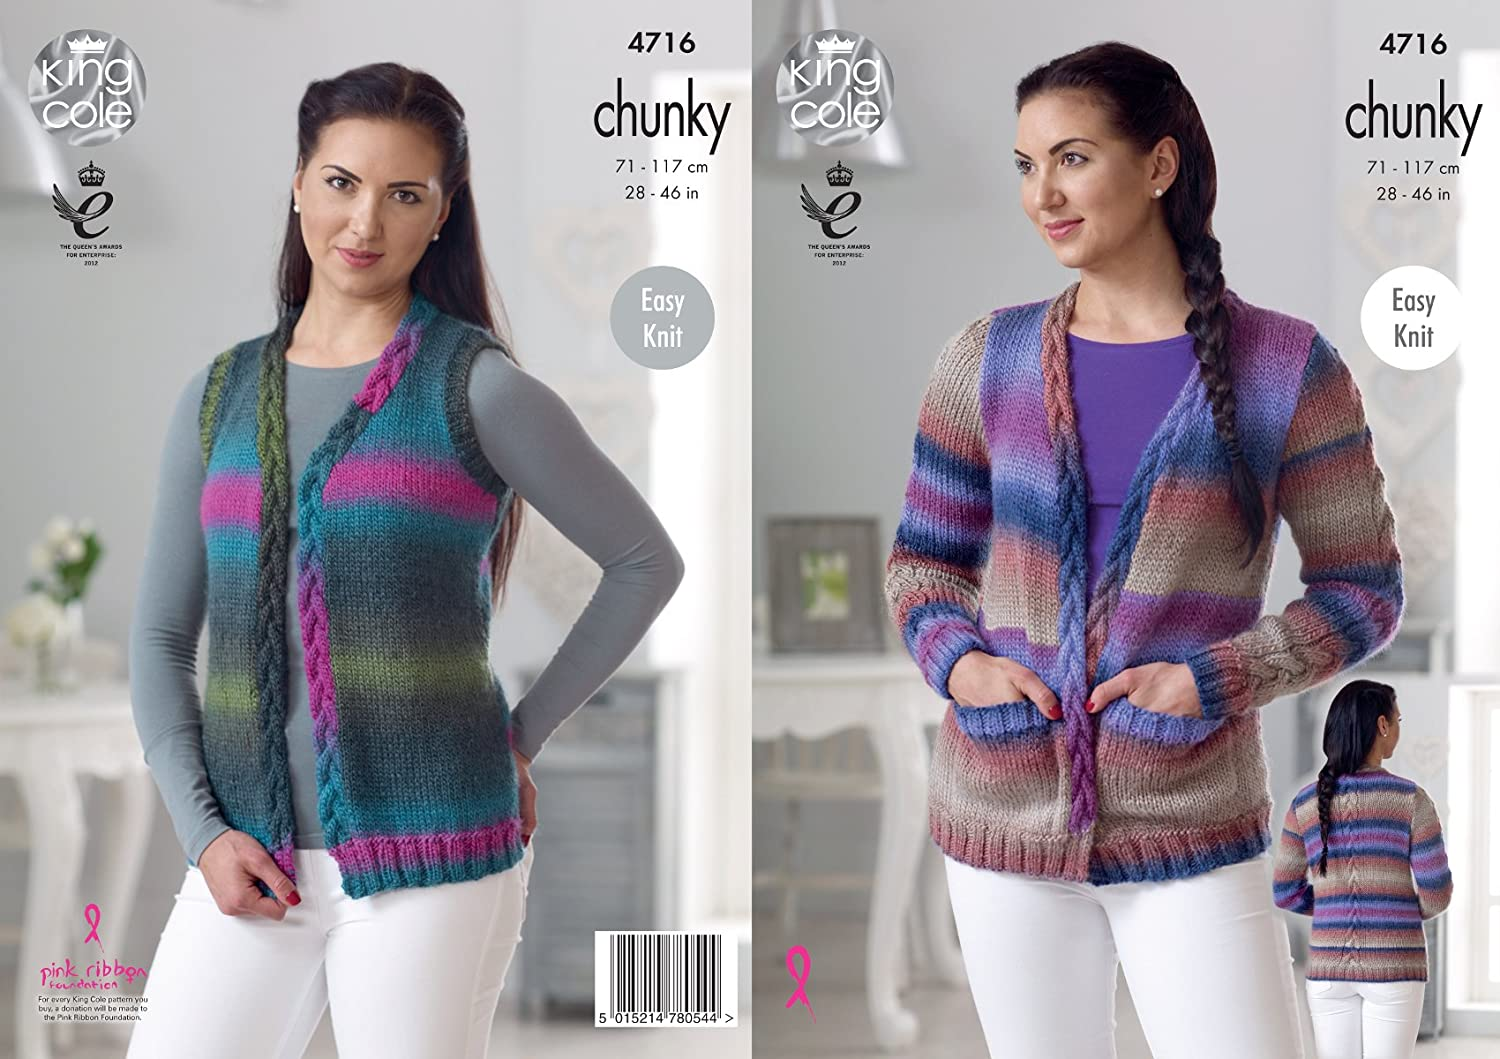 King Cole Ladies Riot Chunky Knitting Pattern Easy Knit Cardigan /& Sweater 4711